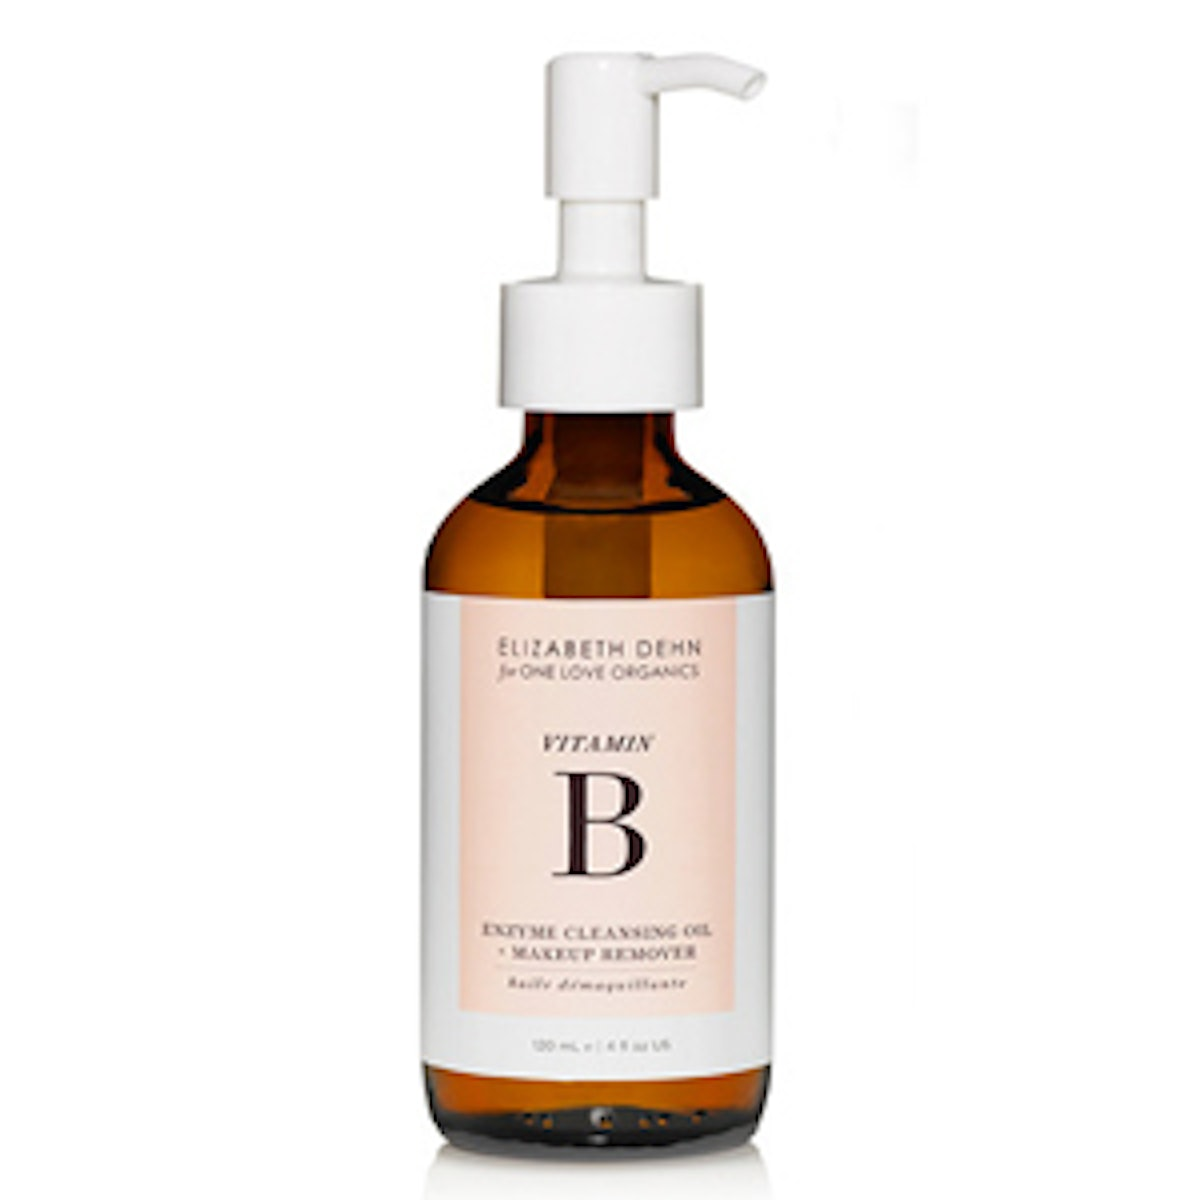 Vitamin B Enzyme Cleansing Oil + Makeup Remover